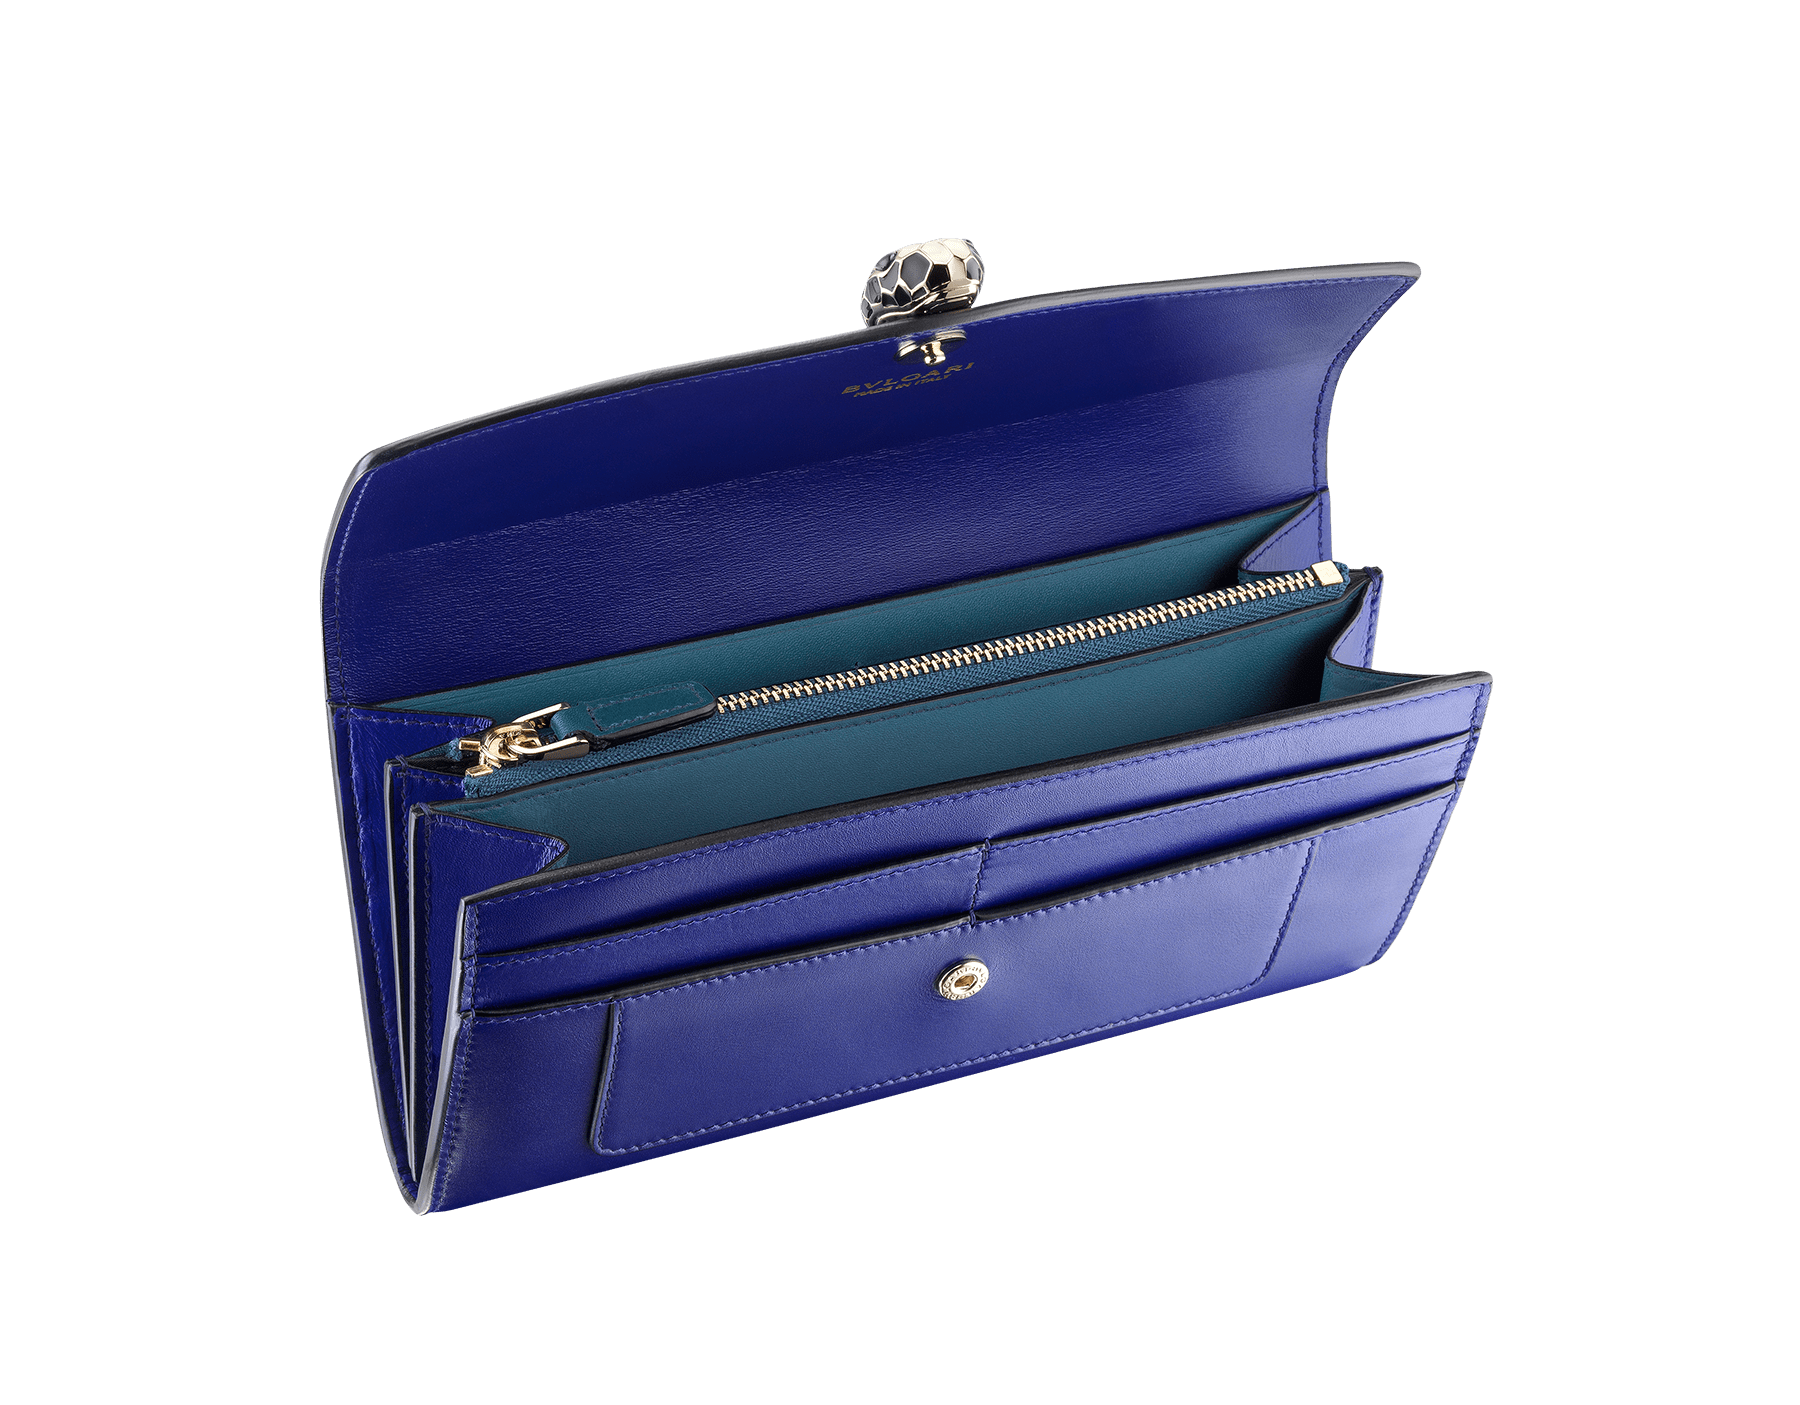 Wallet pochette in royal sapphire and teal topaz calf leather with brass light gold plated hardware. Serpenti head stud closure in black and white enamel with eyes in green malachite. Two internal gussets, sixteen credit card slots, one bill compartment and a zipped change holder in the middle. Also available in other colours. 19 x 10 cm. - 7.5 x 3.9 281296 image 2